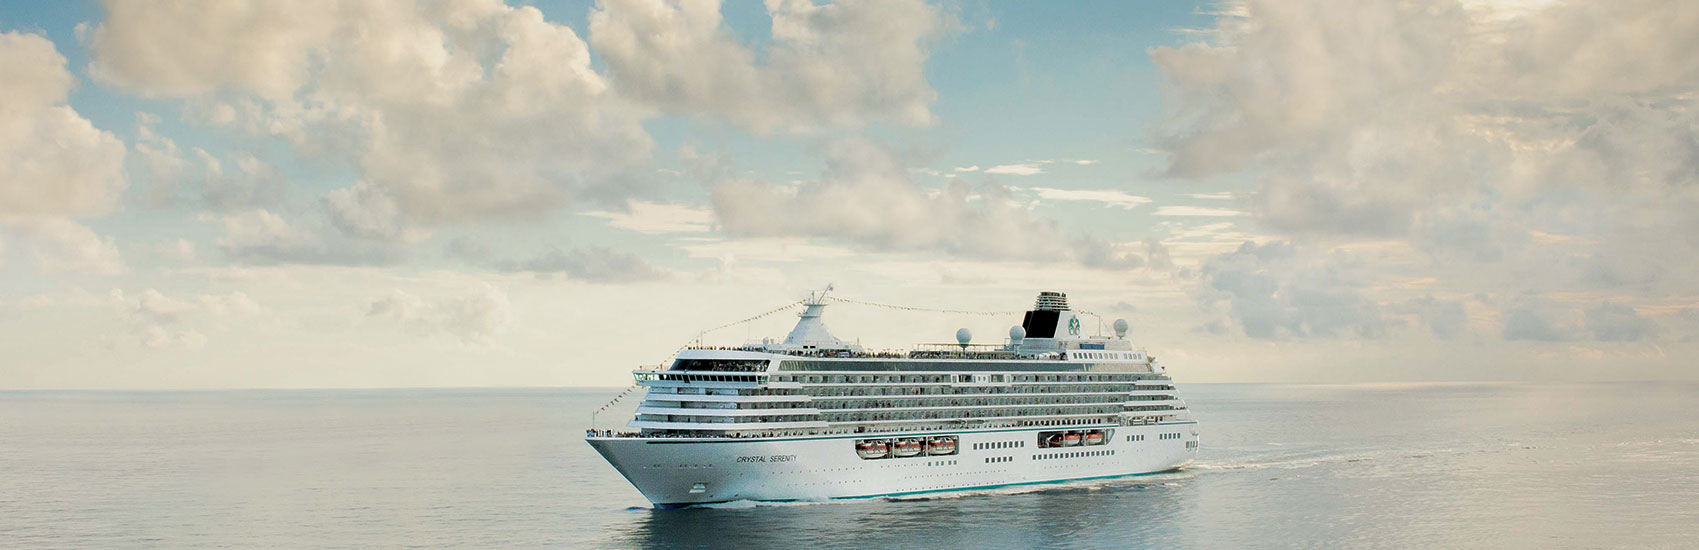 Simply the Best in the Caribbean with Crystal Cruises 5